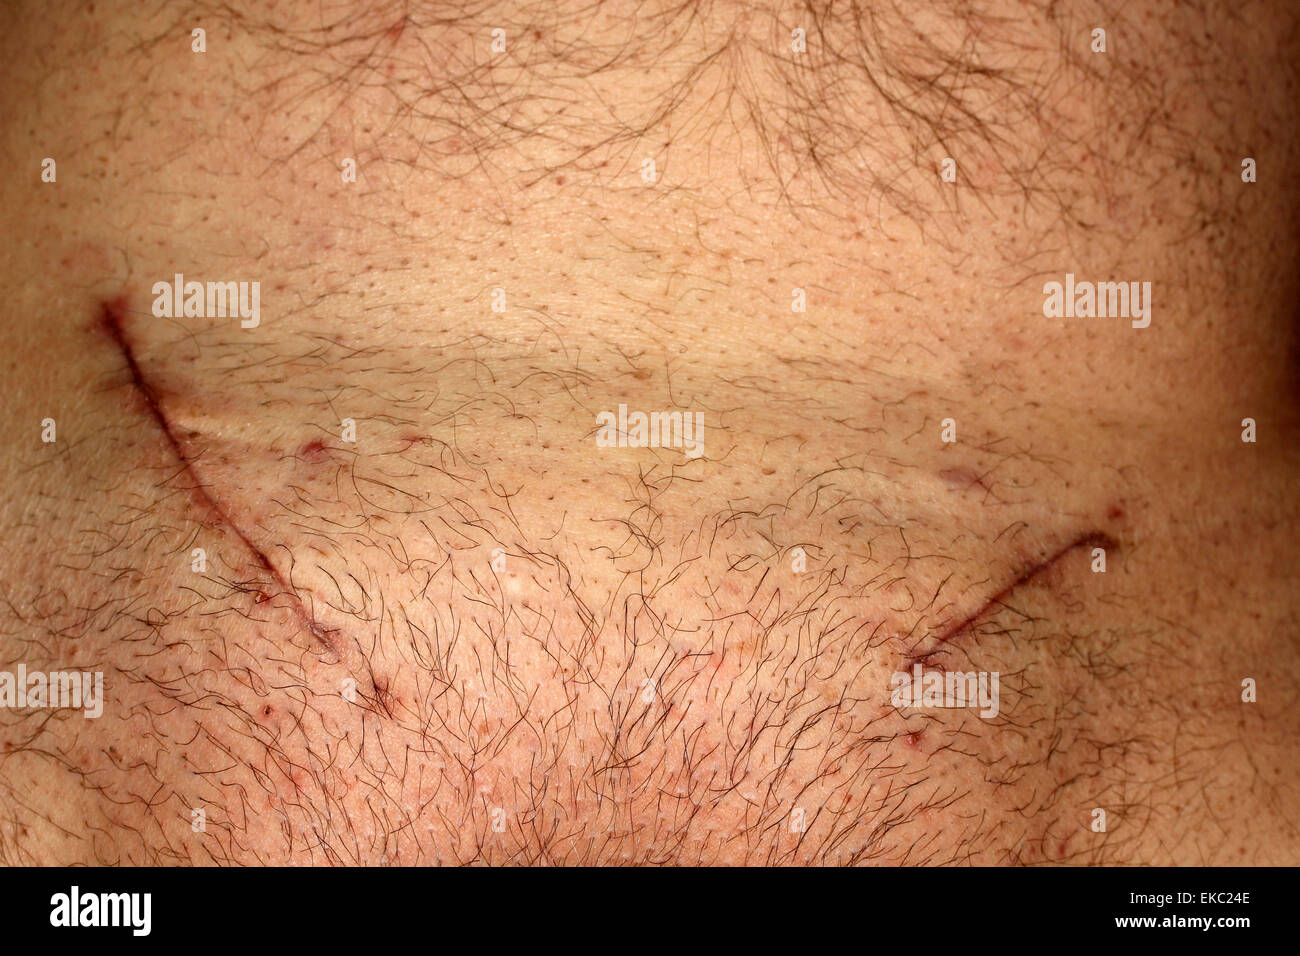 Double hernia surgery. Scars. Stock Photo